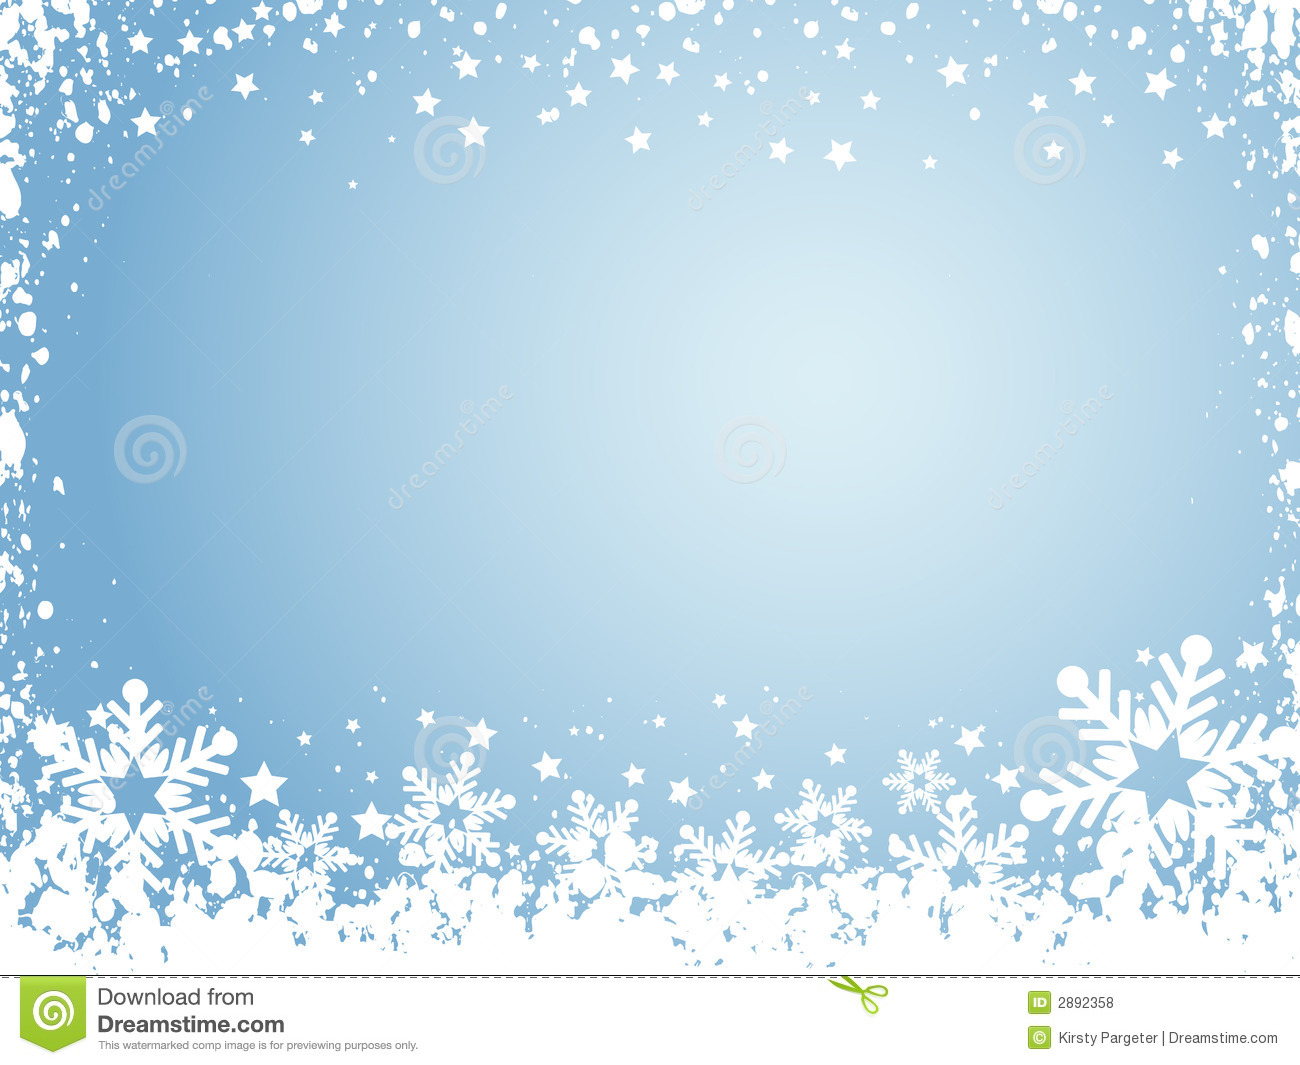 Snowflake Clipart Free No . - Snow Background Clipart